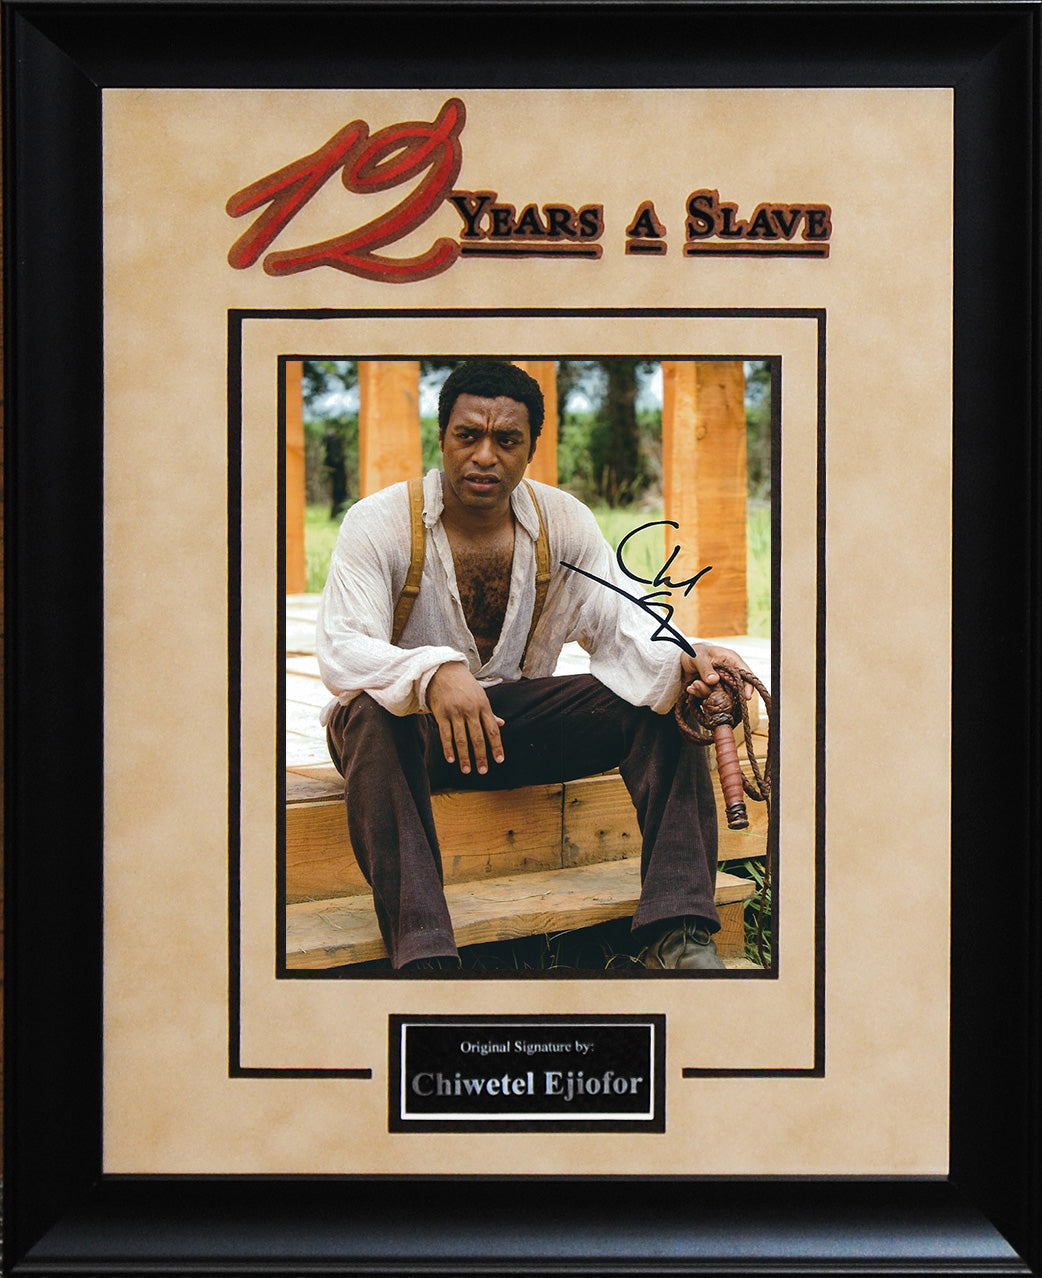 """12 Years A Slave"" - Chiwetel Ejiofor Signed 8x10 Photo"